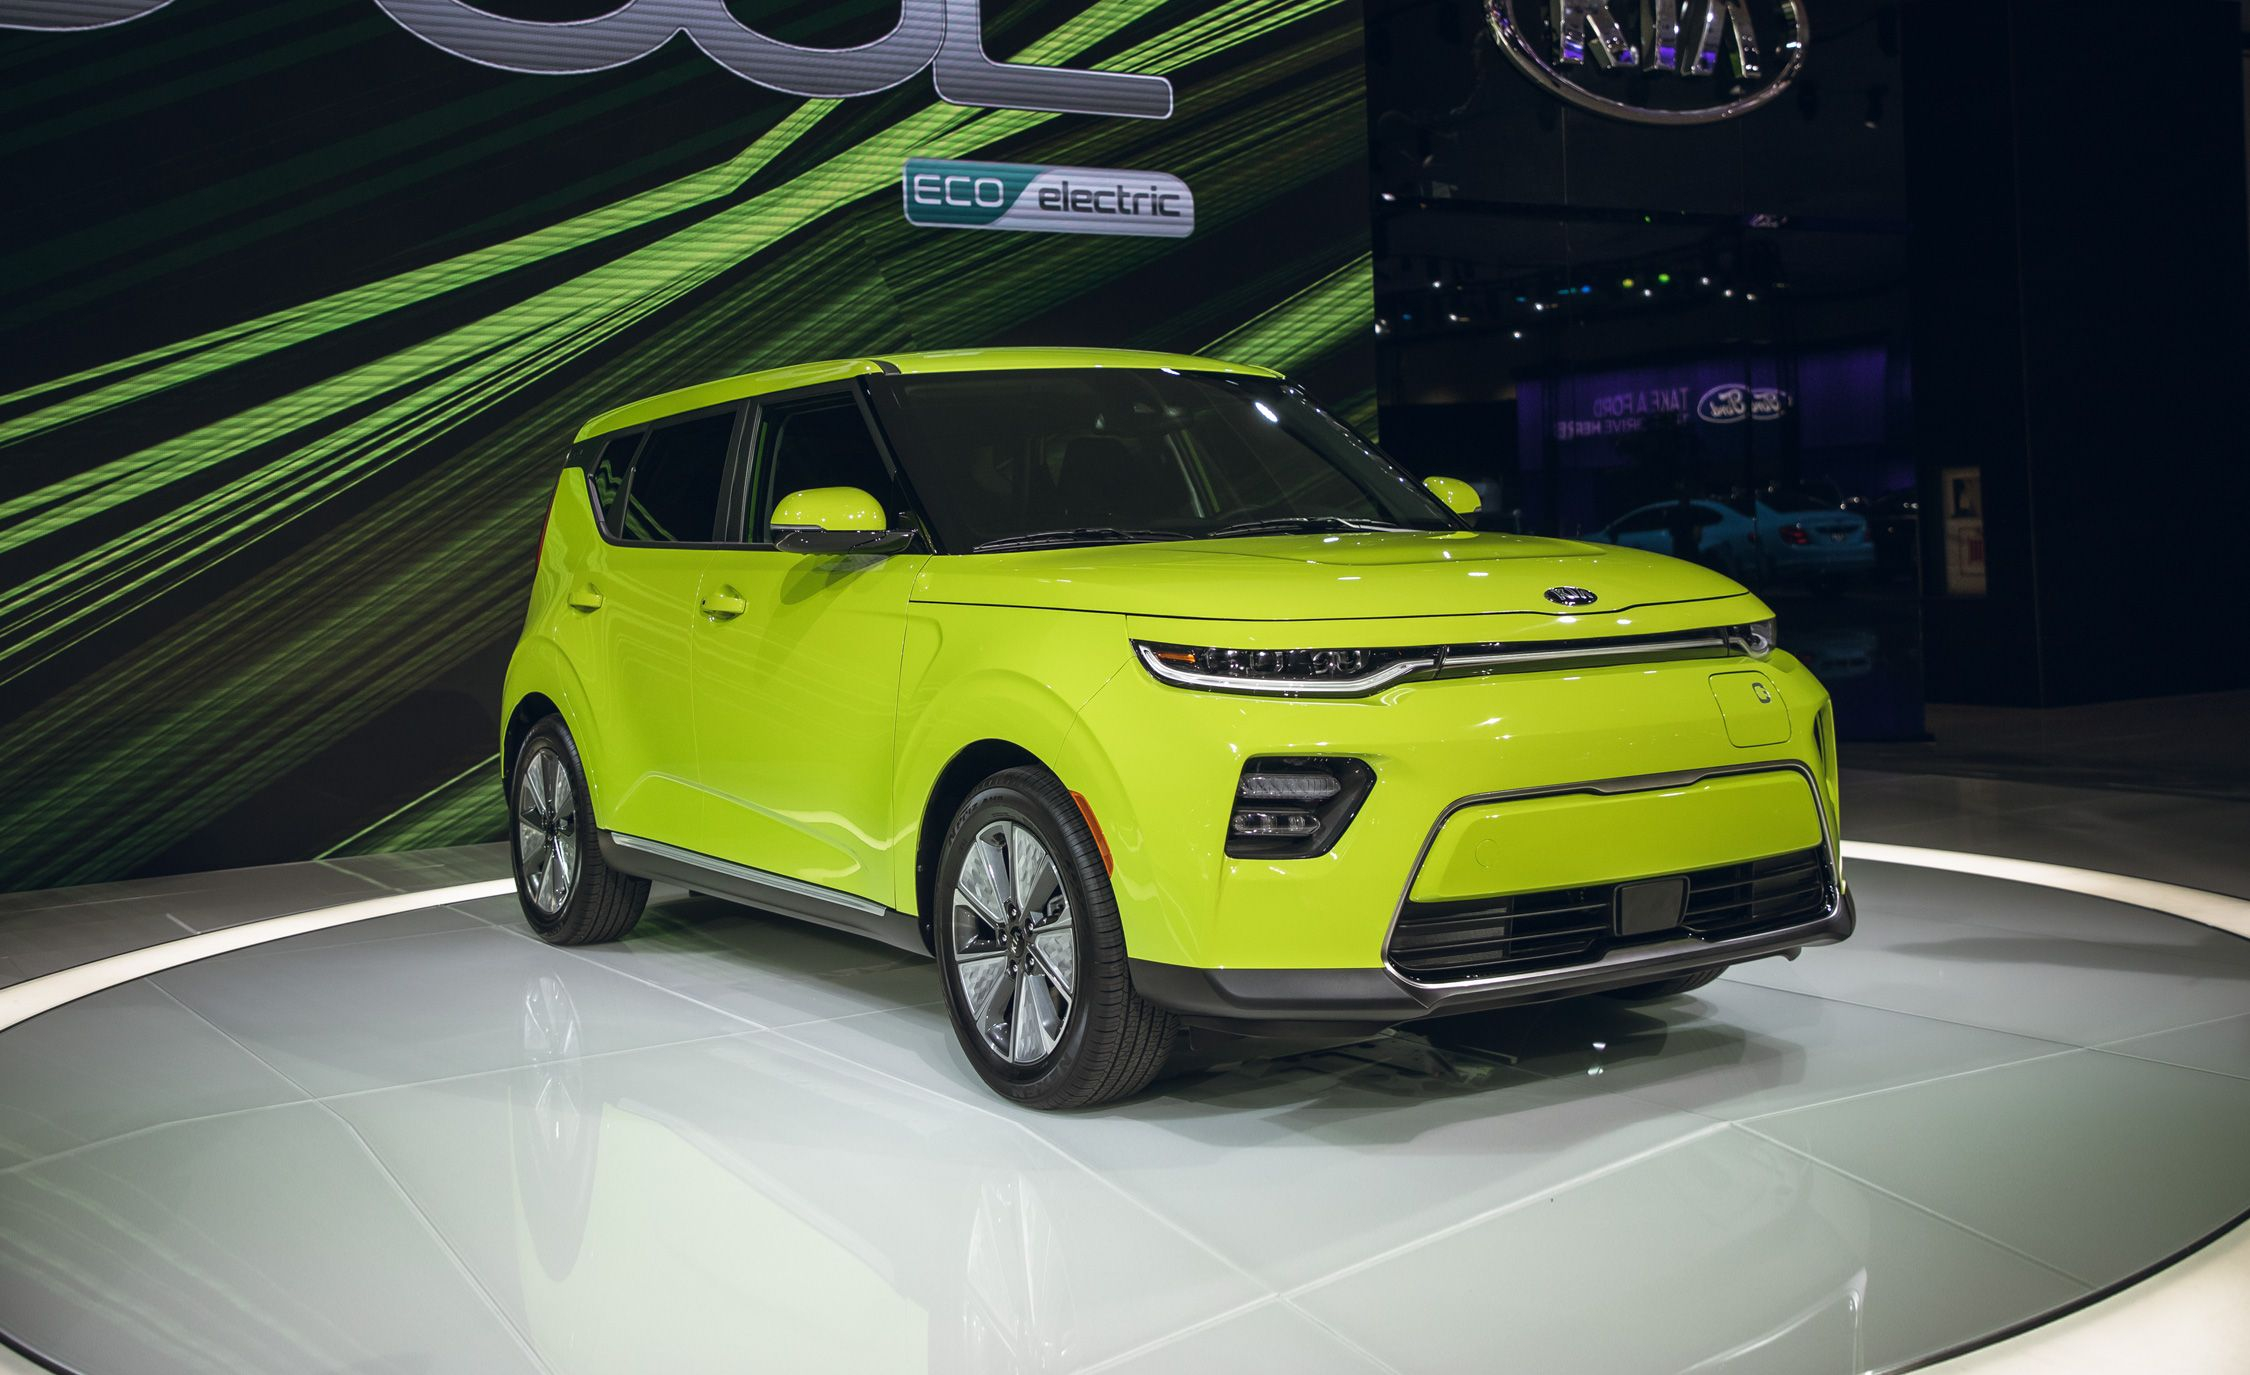 2020 Kia Soul Ev - New Electric Crossover Gets More Power - 2022 Kia Soul Hatchback Engine Performance, Release Date